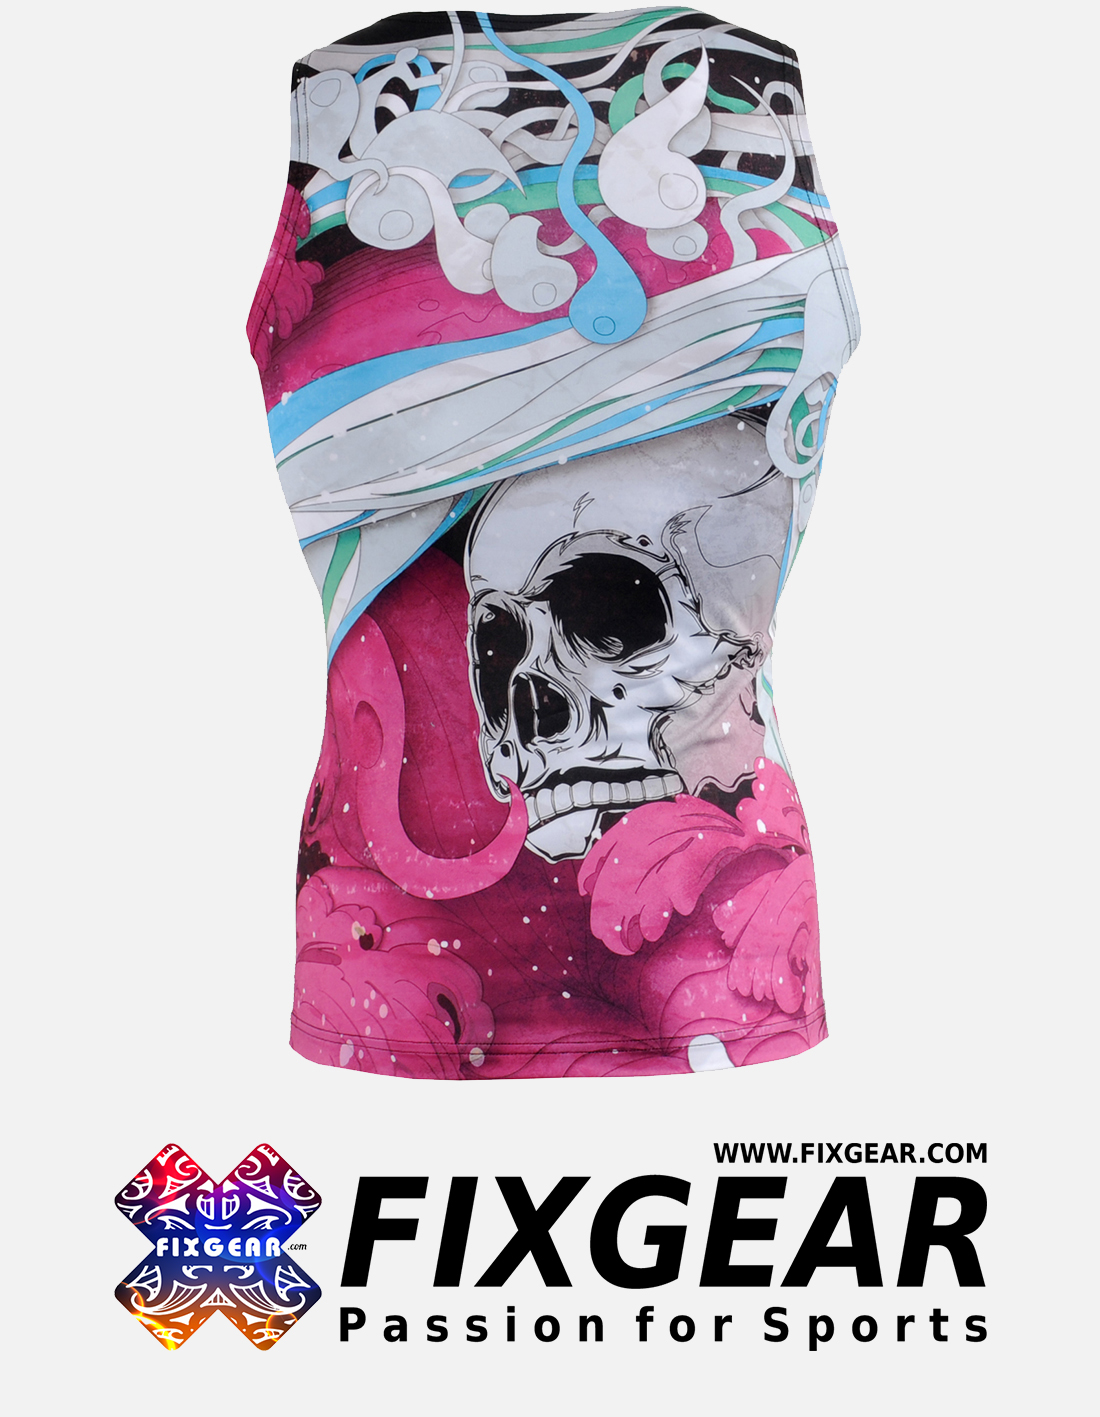 FIXGEAR CFN-L19P Compression Base Layer Sleeveless Shirt